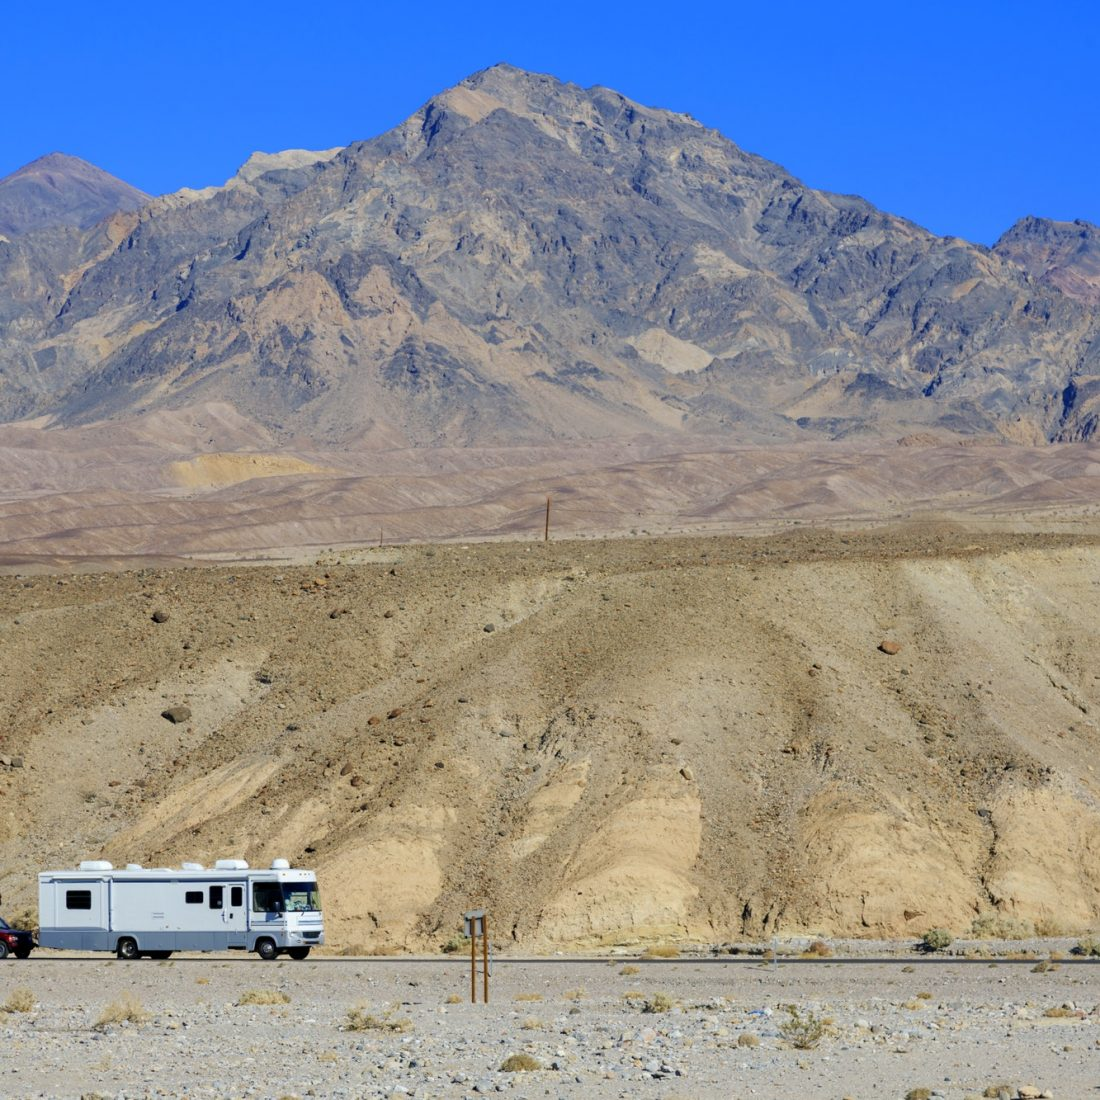 Camper taxing suv on the desert road